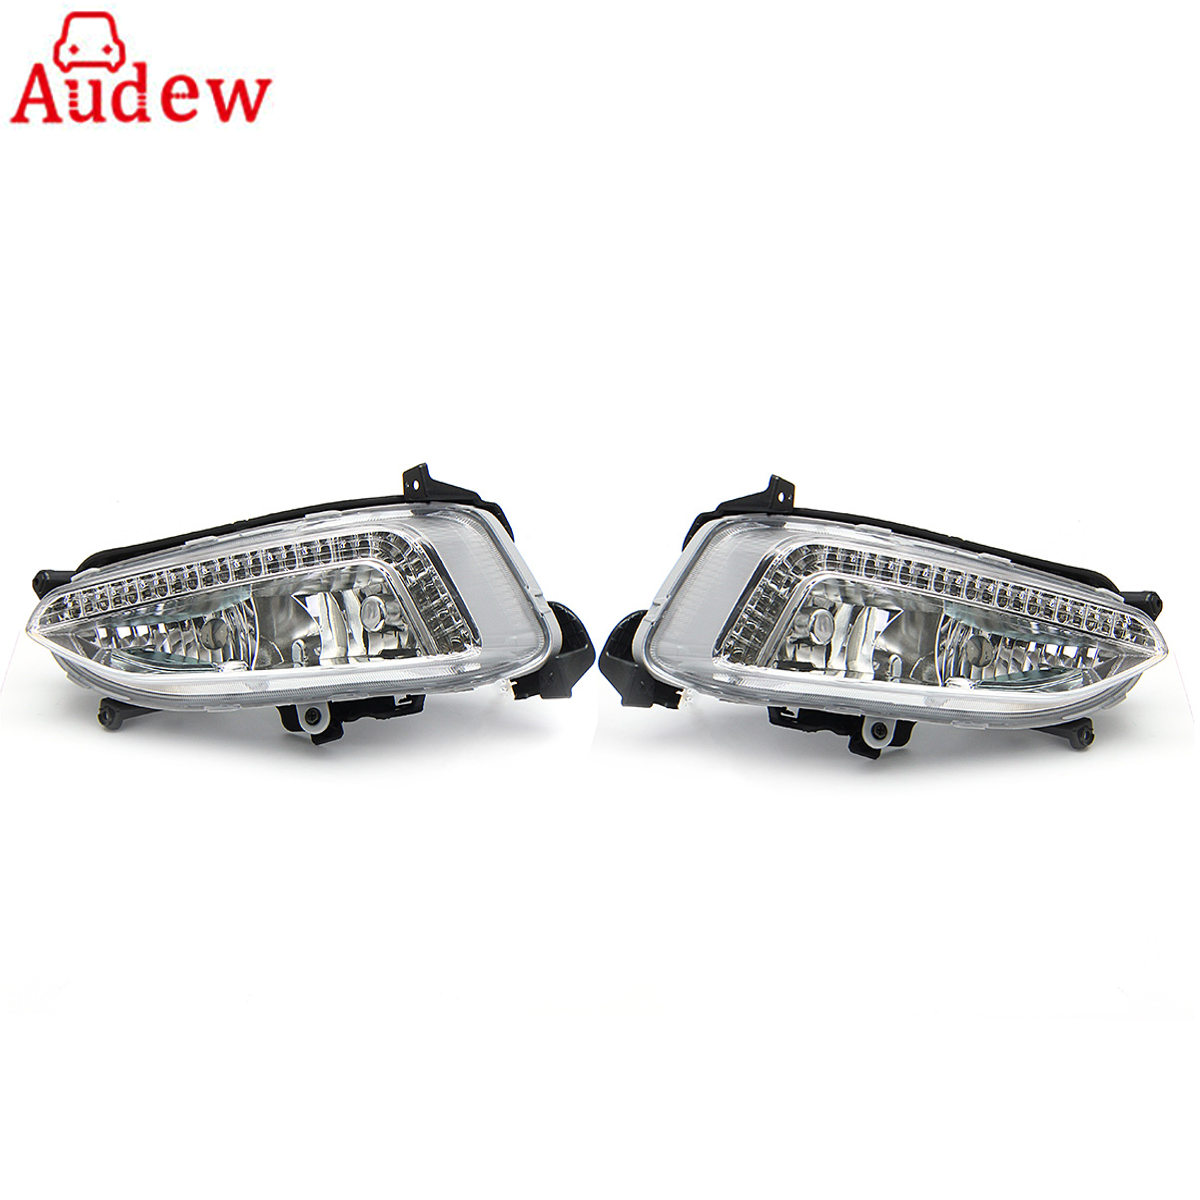 1Pair LED Car Light Assembly DRL Daytime Running Light Fog Lamp For Hyundai IX45 Santa Fe 2013 2014 DC 12V 5500K~6500K wljh 2x car led 7 5w 12v 24v cob chip 881 h27 led fog light daytime running lamp drl fog light bulb lamp for kia sorento hyundai